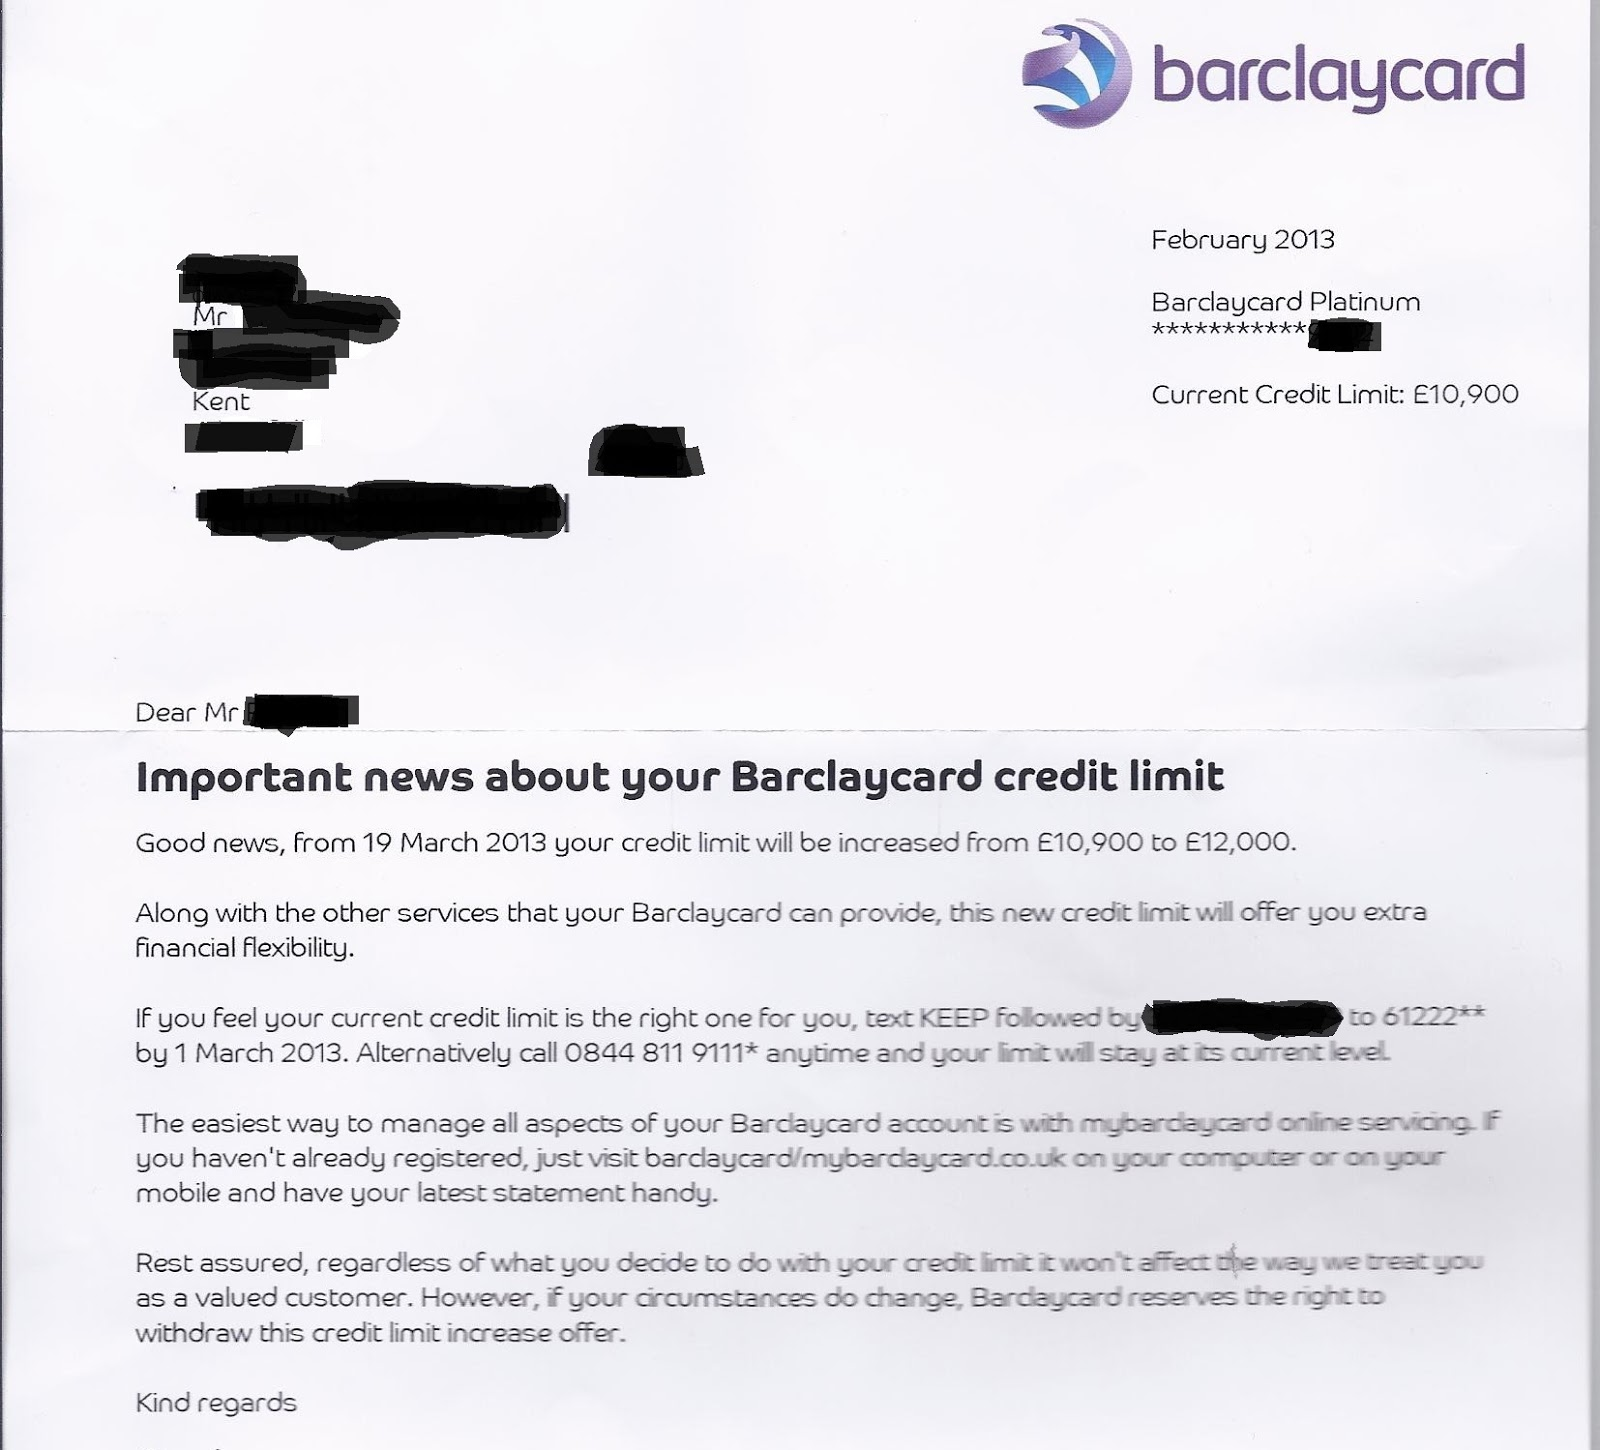 requesting a credit increase